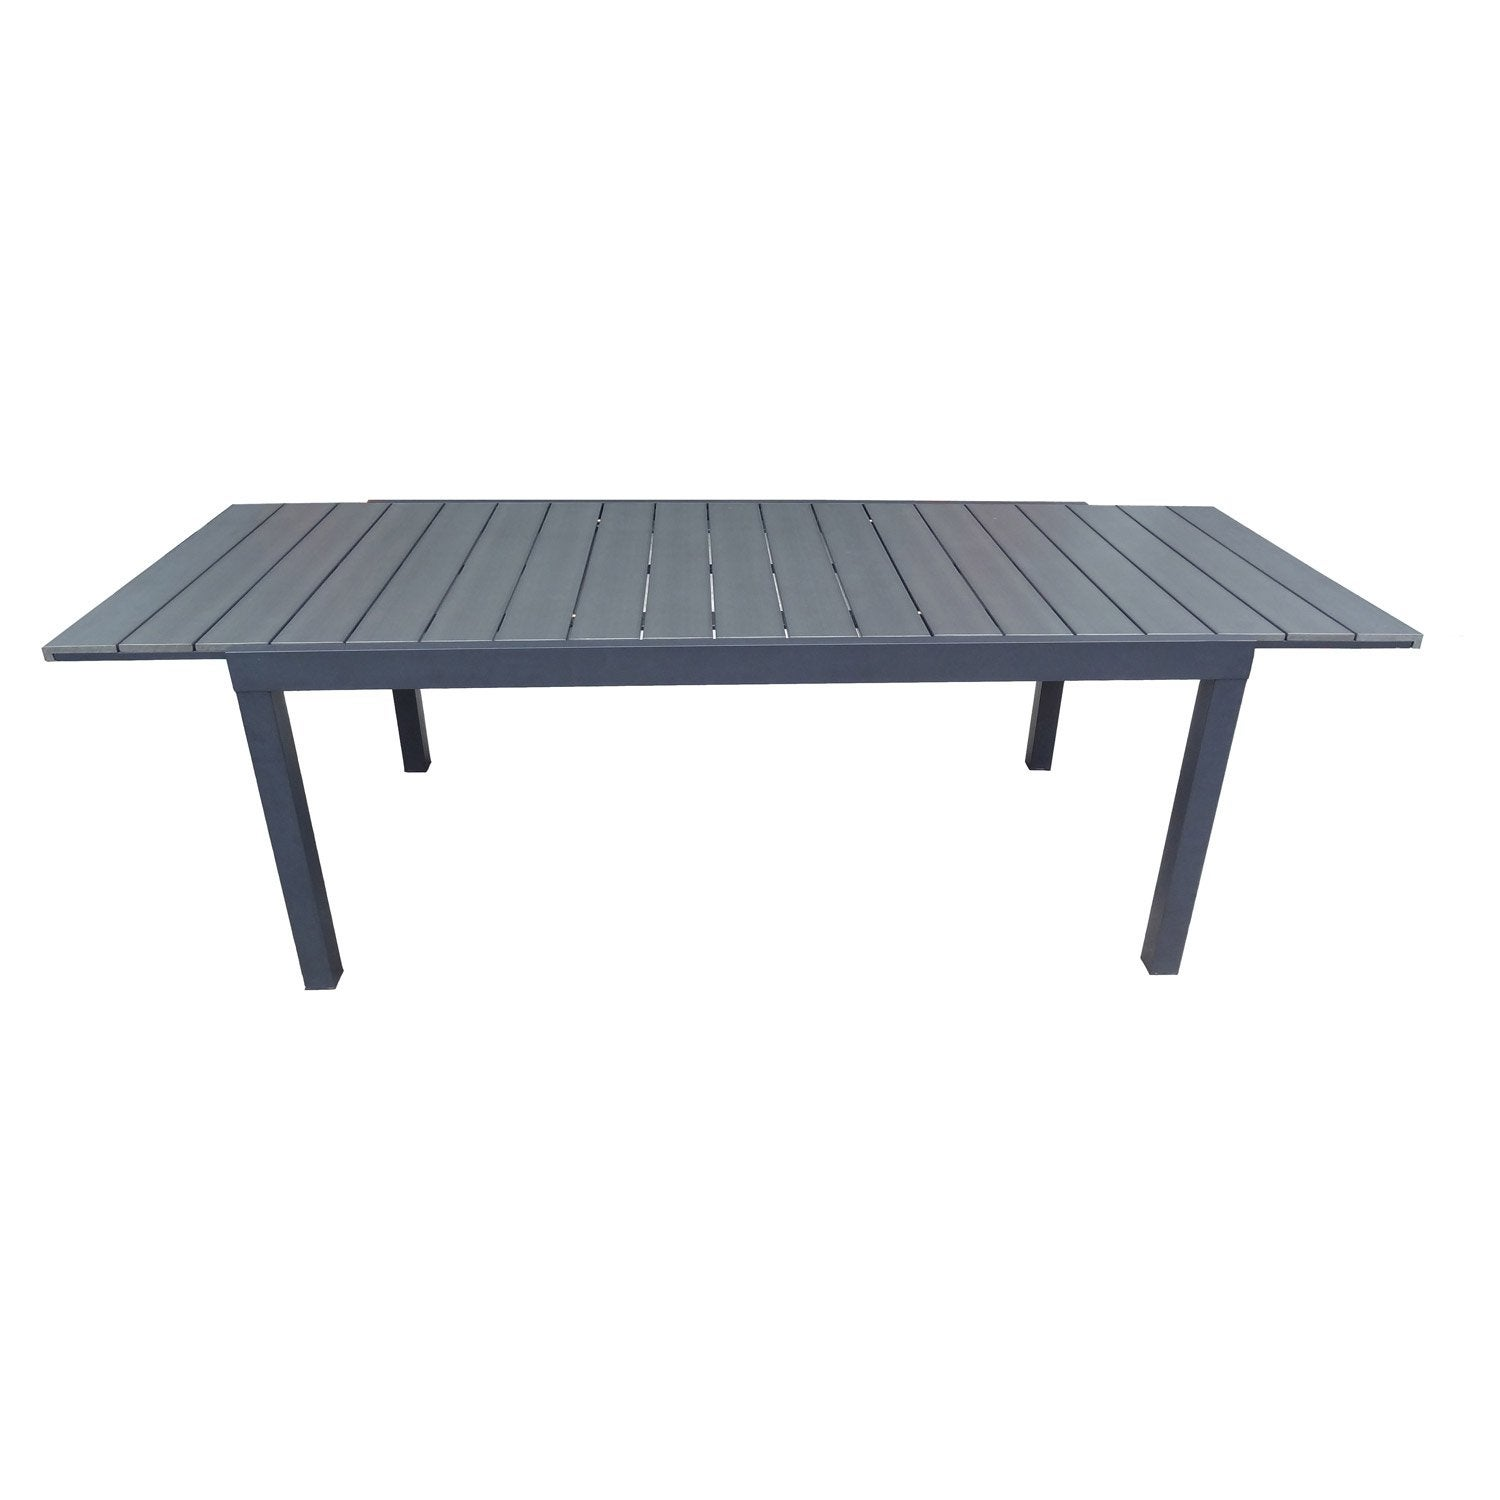 Table de jardin naterial pratt rectangulaire gris leroy merlin - Table en aluminium exterieur ...